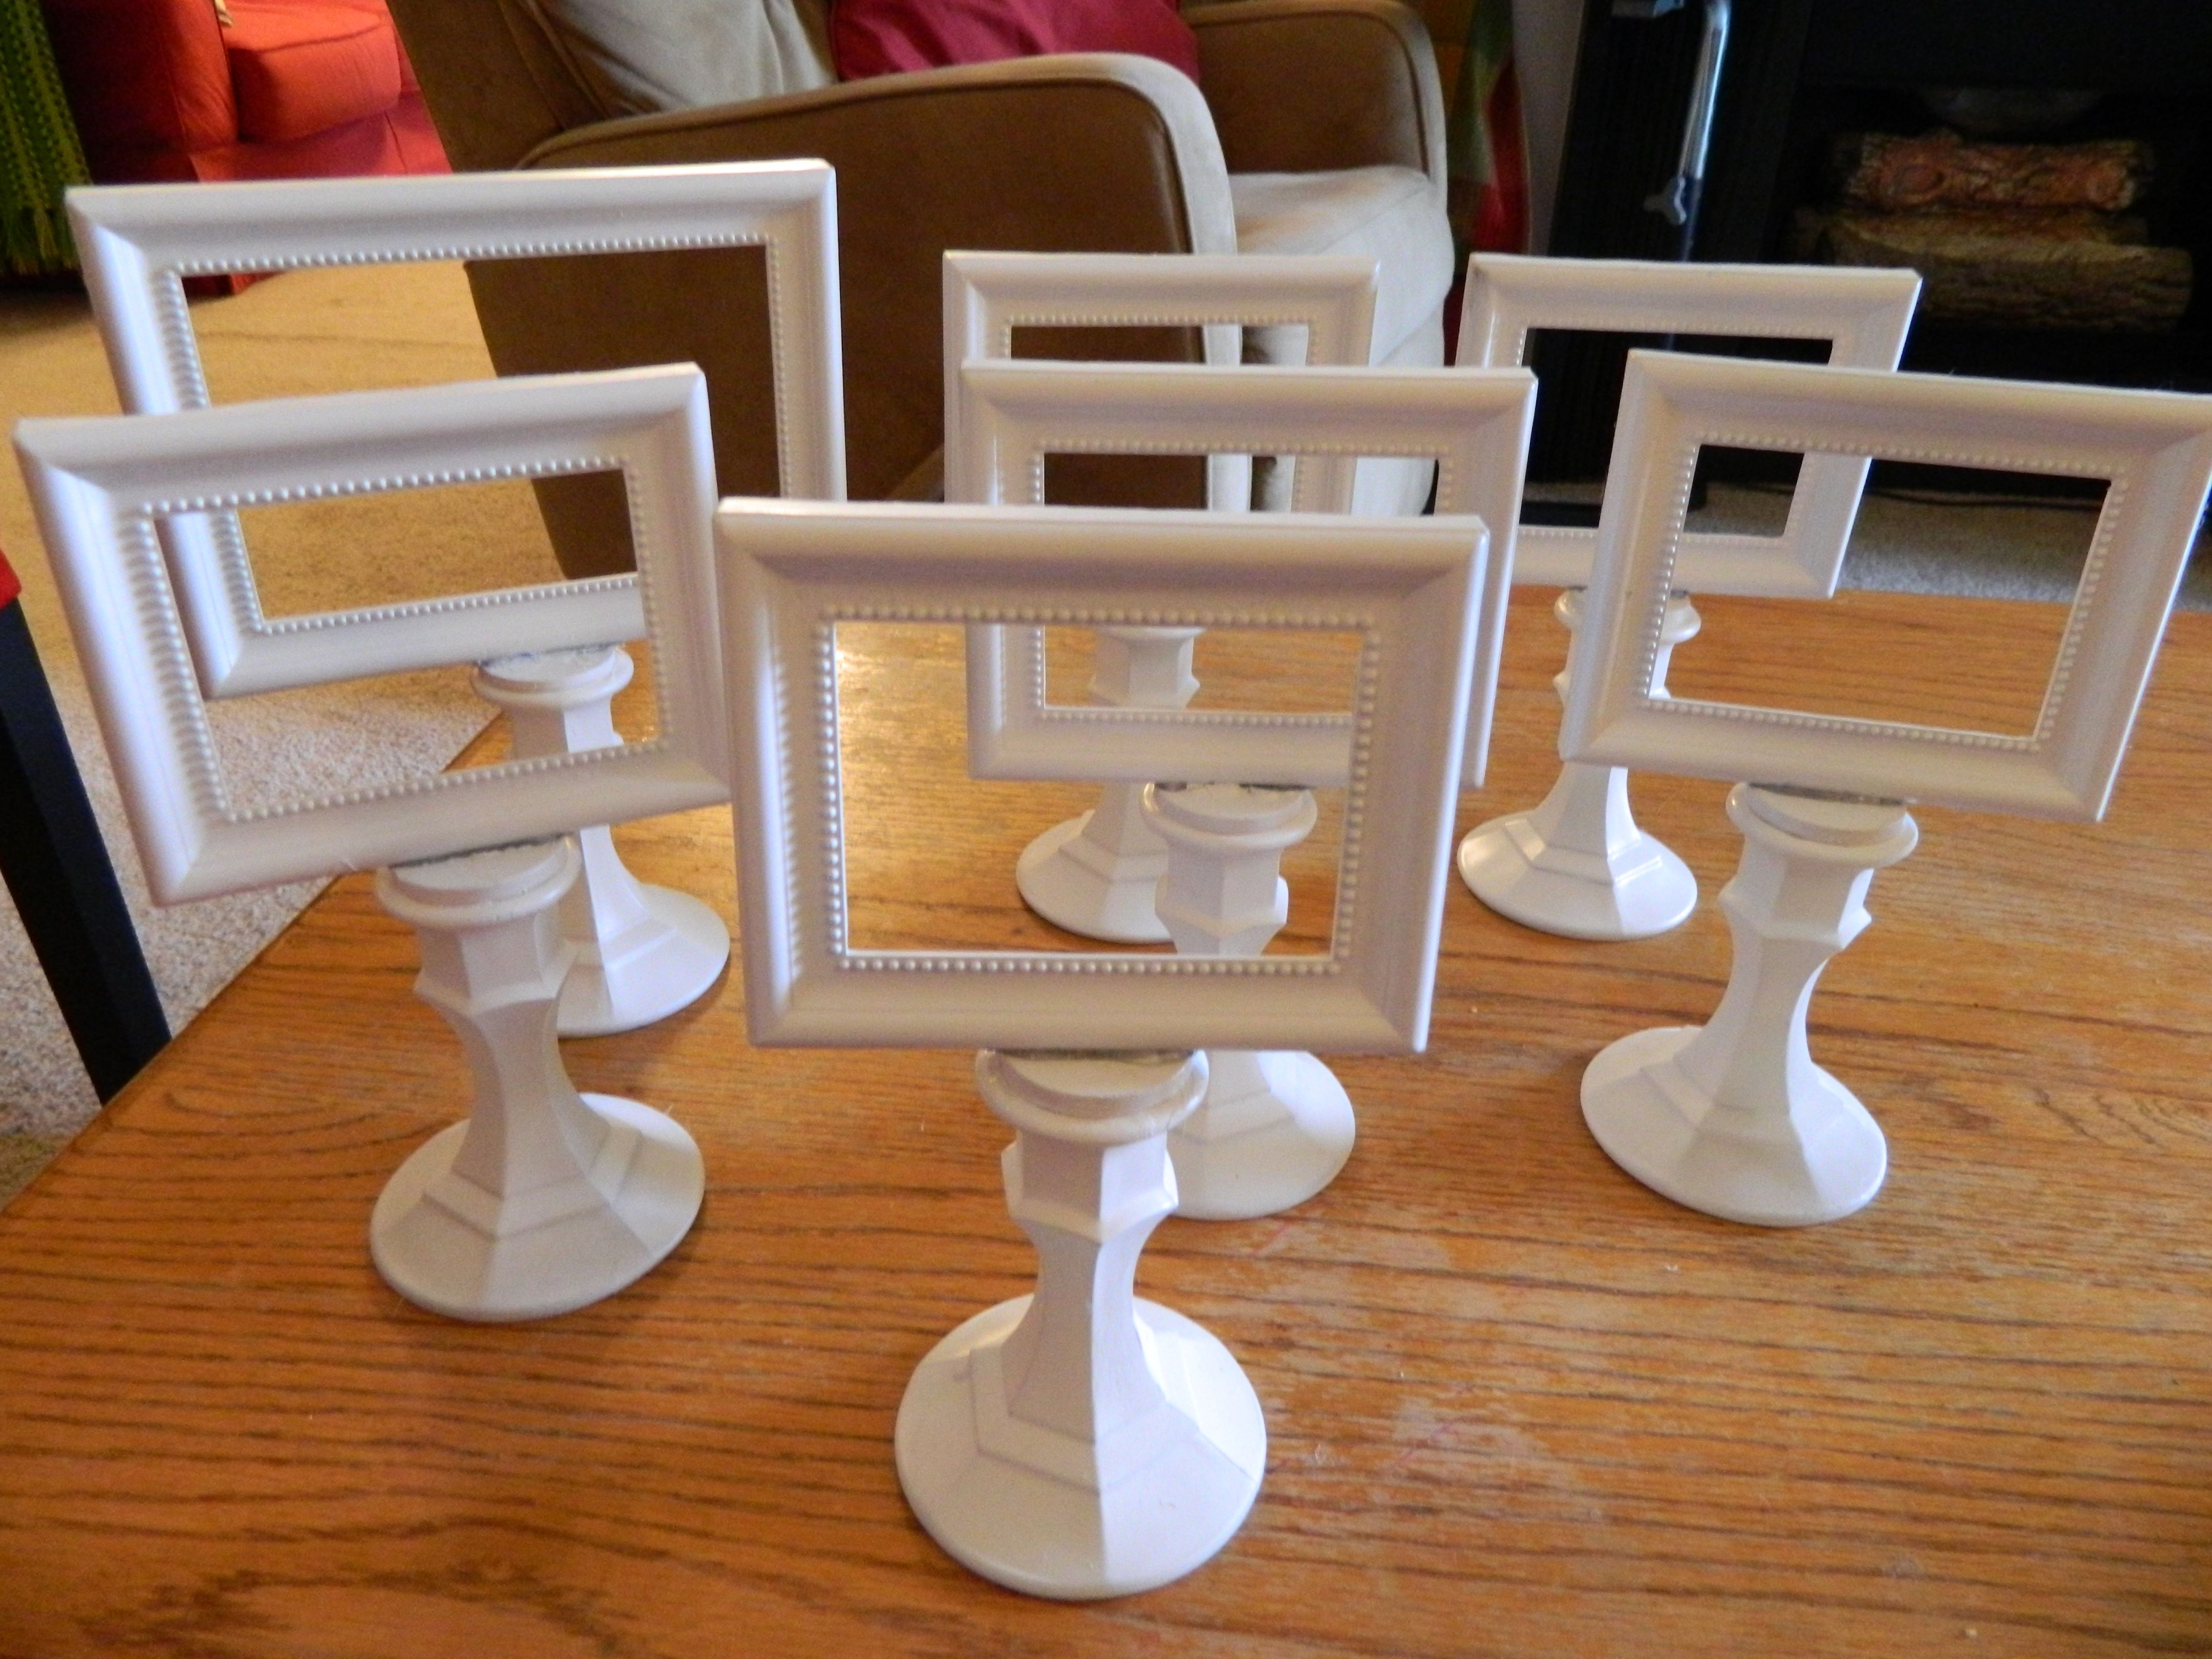 Diy Table Signs Small Frames Mounted On Short Candlesticks All Painted White